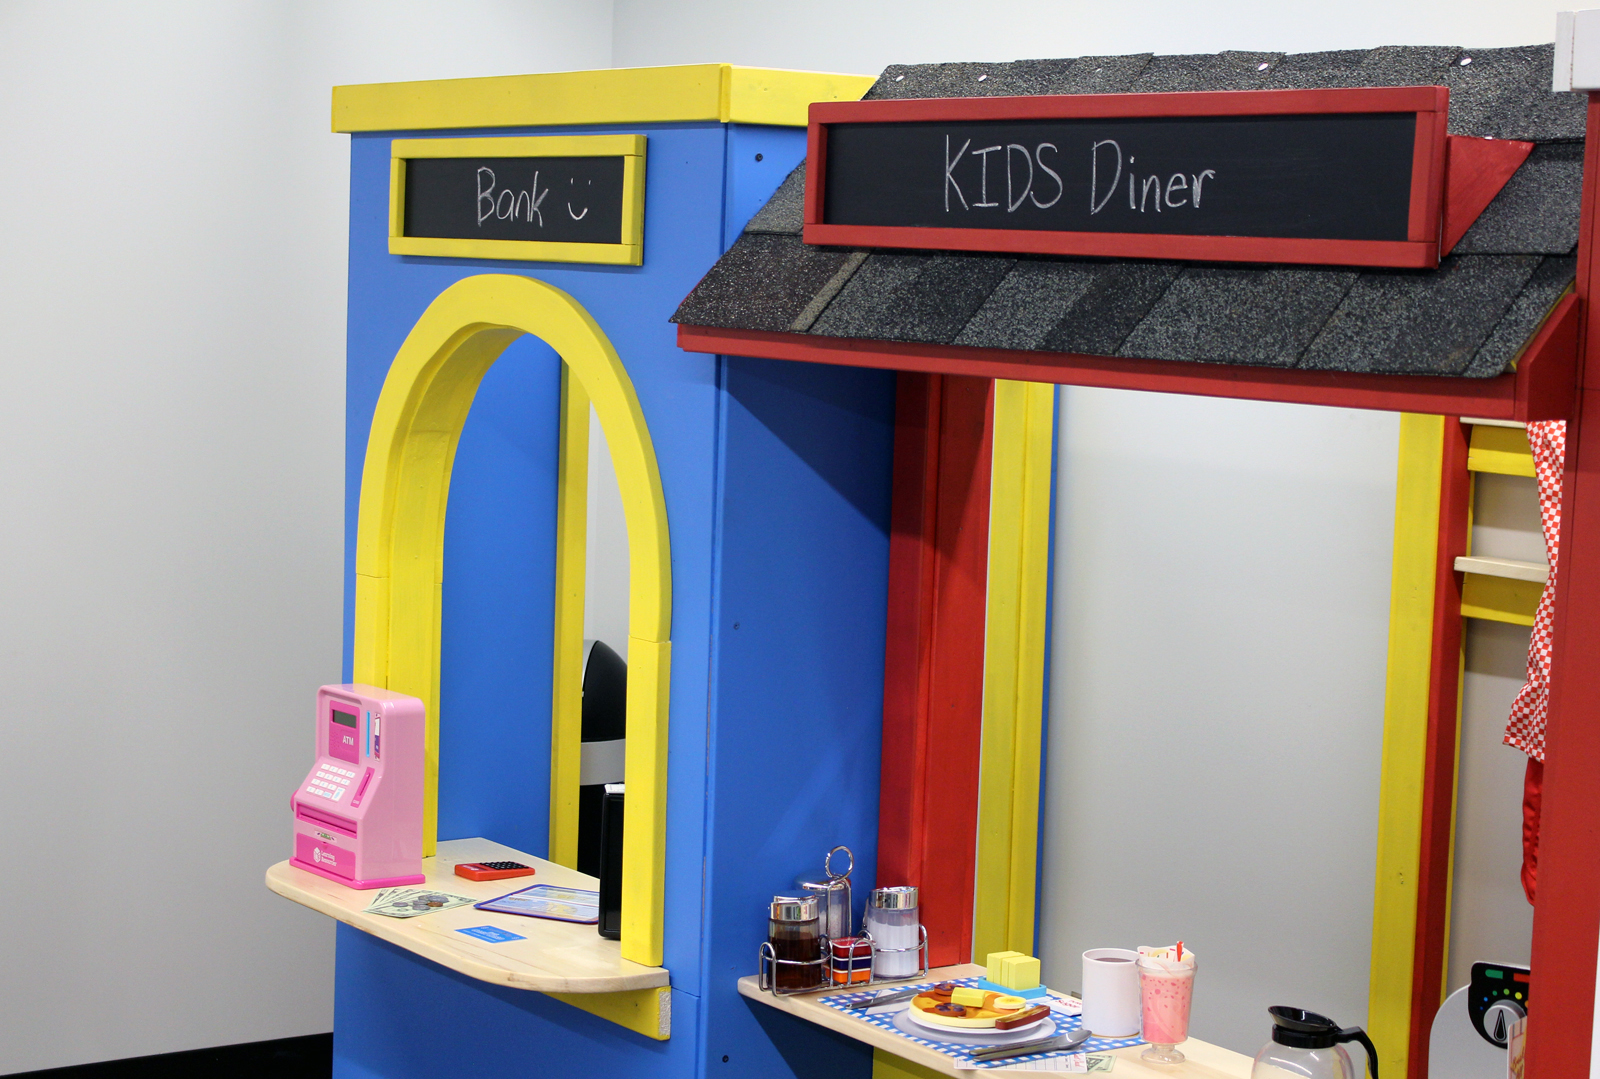 Classroom spaces at the Completely KIDS headquarters, 2566 St. Mary's Ave., include movable pieces that help young children explore careers and have structured playtime together. (Photo by Scott Stewart)